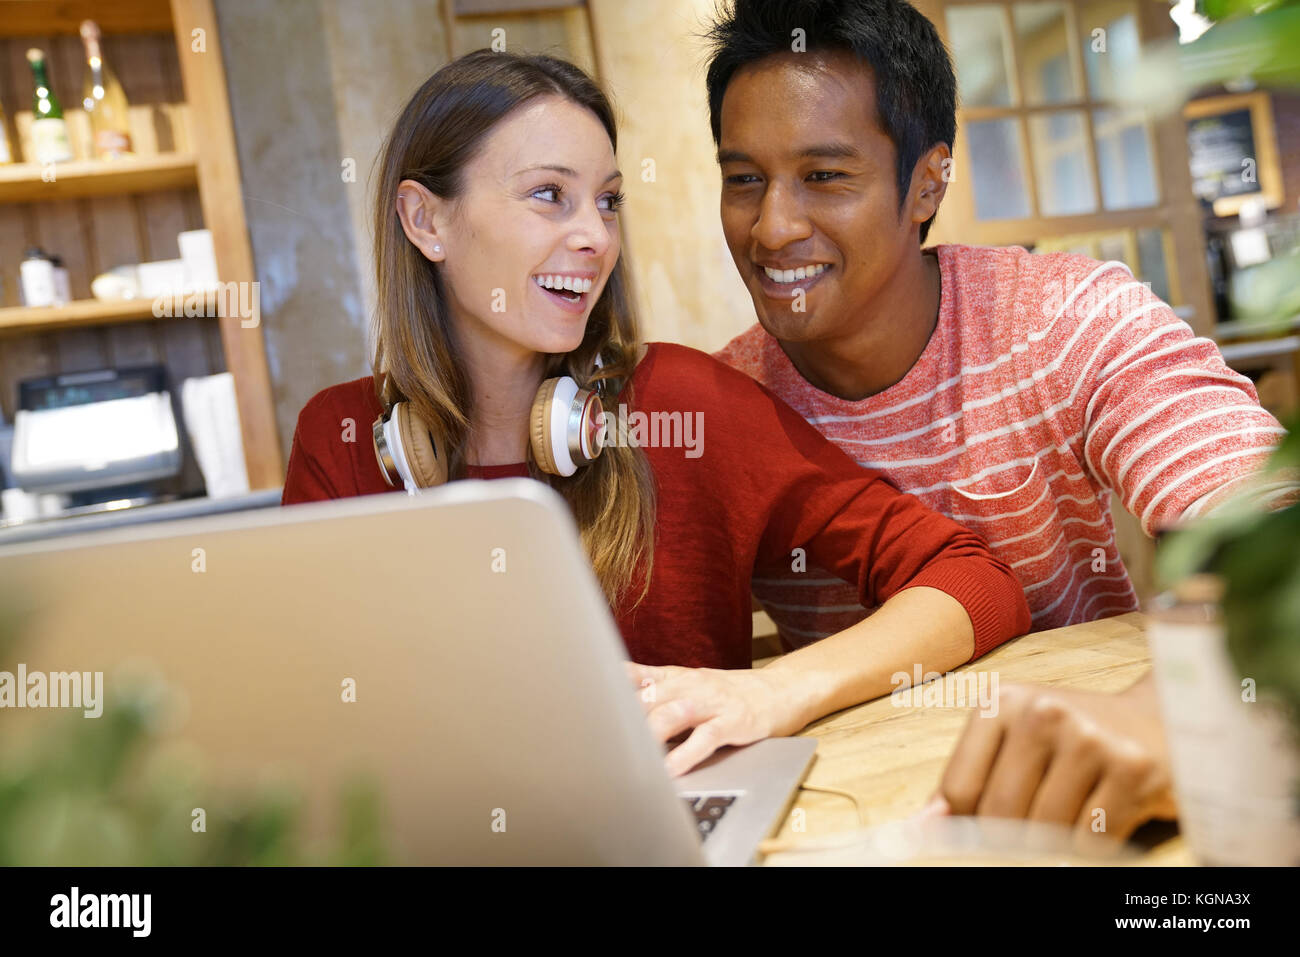 Couple in restaurant connected on internet with laptop - Stock Image